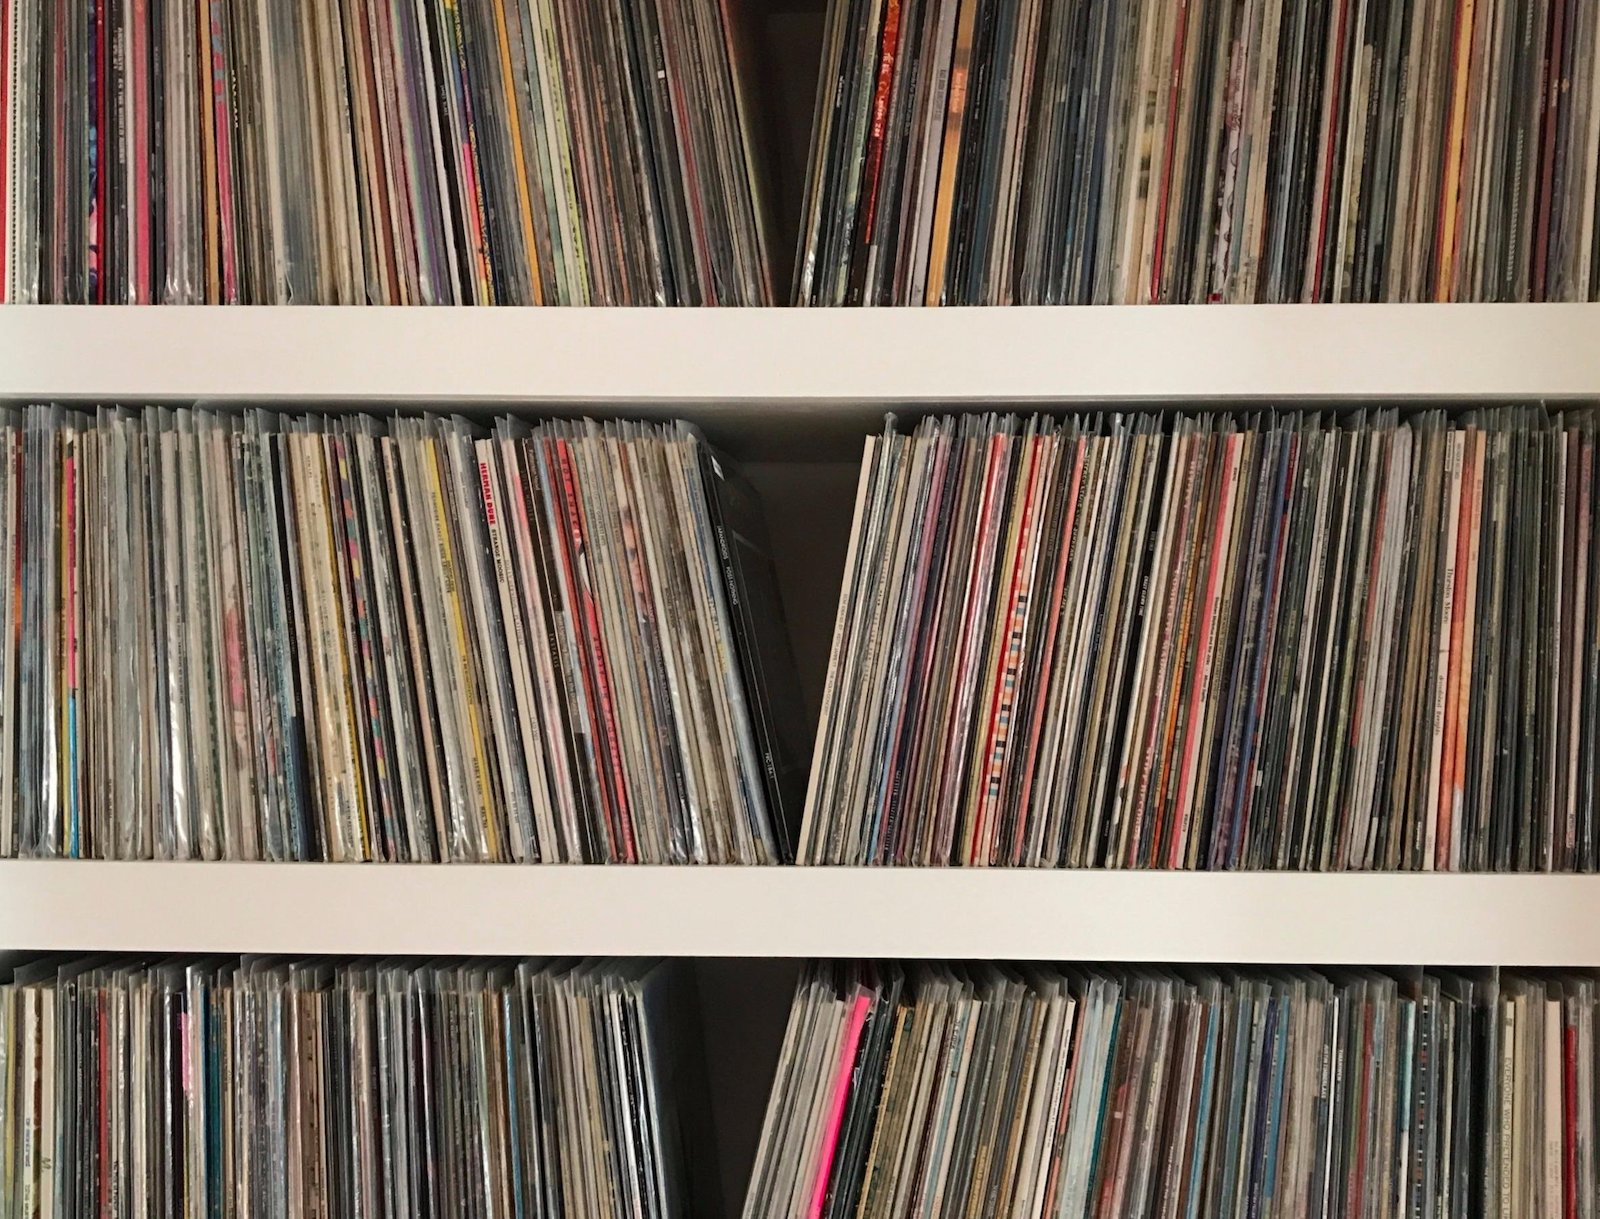 Image of records in a shelf